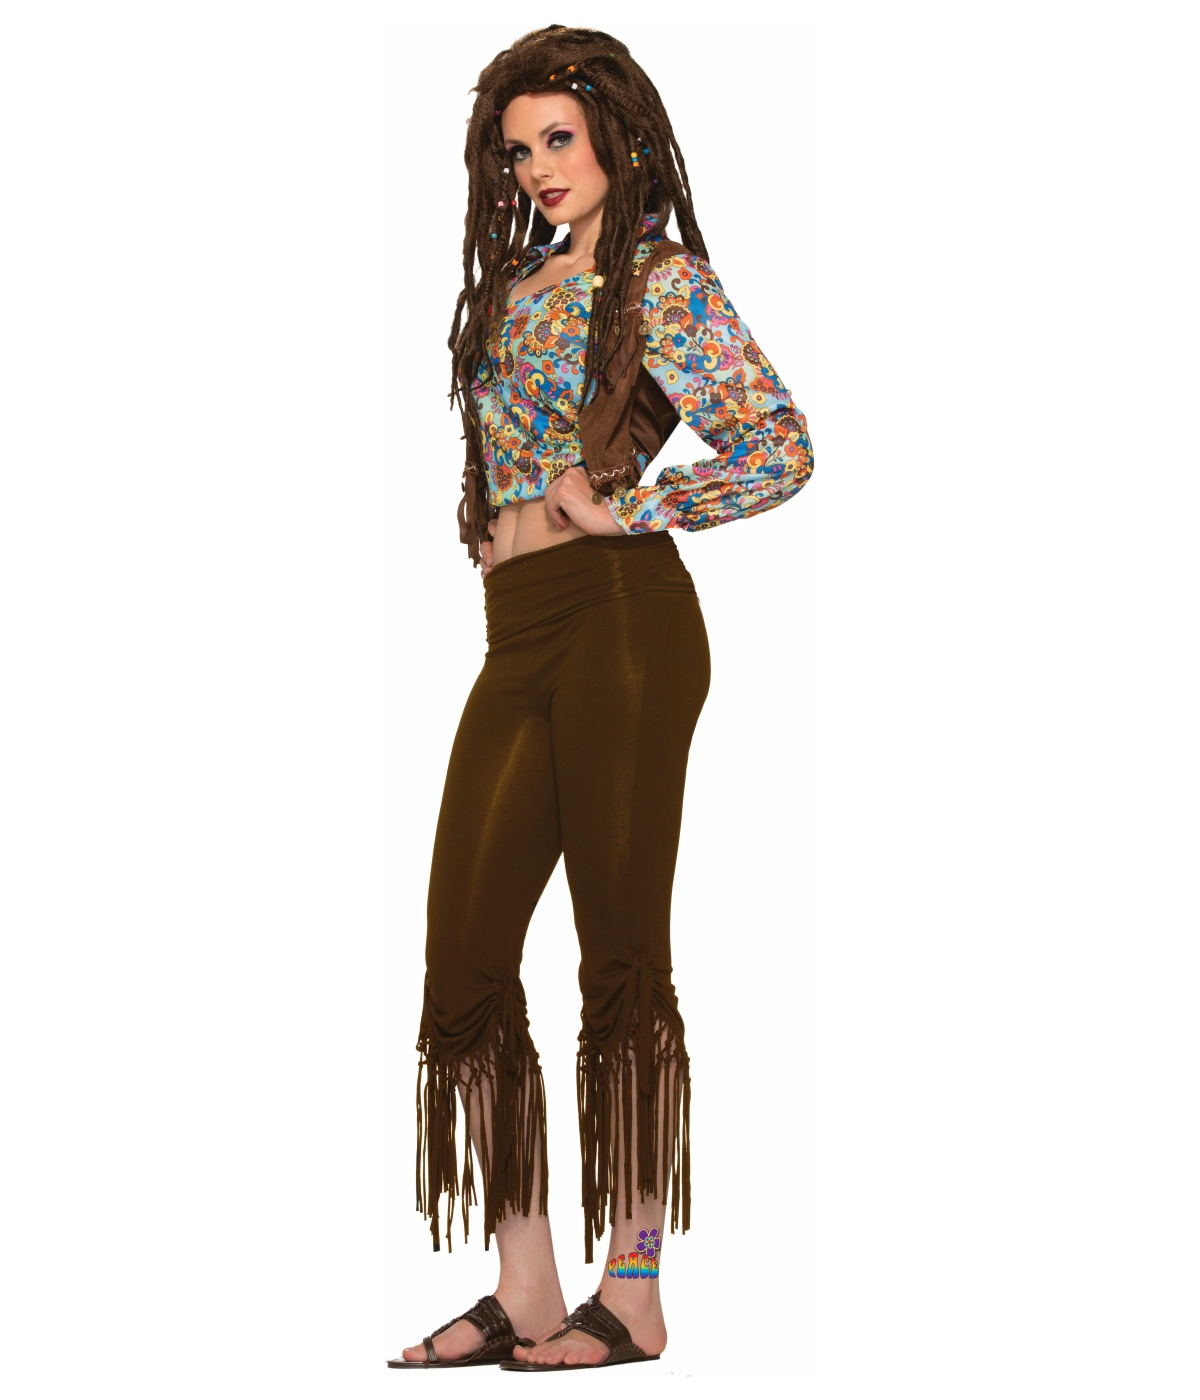 bb42203f7aa Fringed Hippie Womens Pants - Hippie costumes